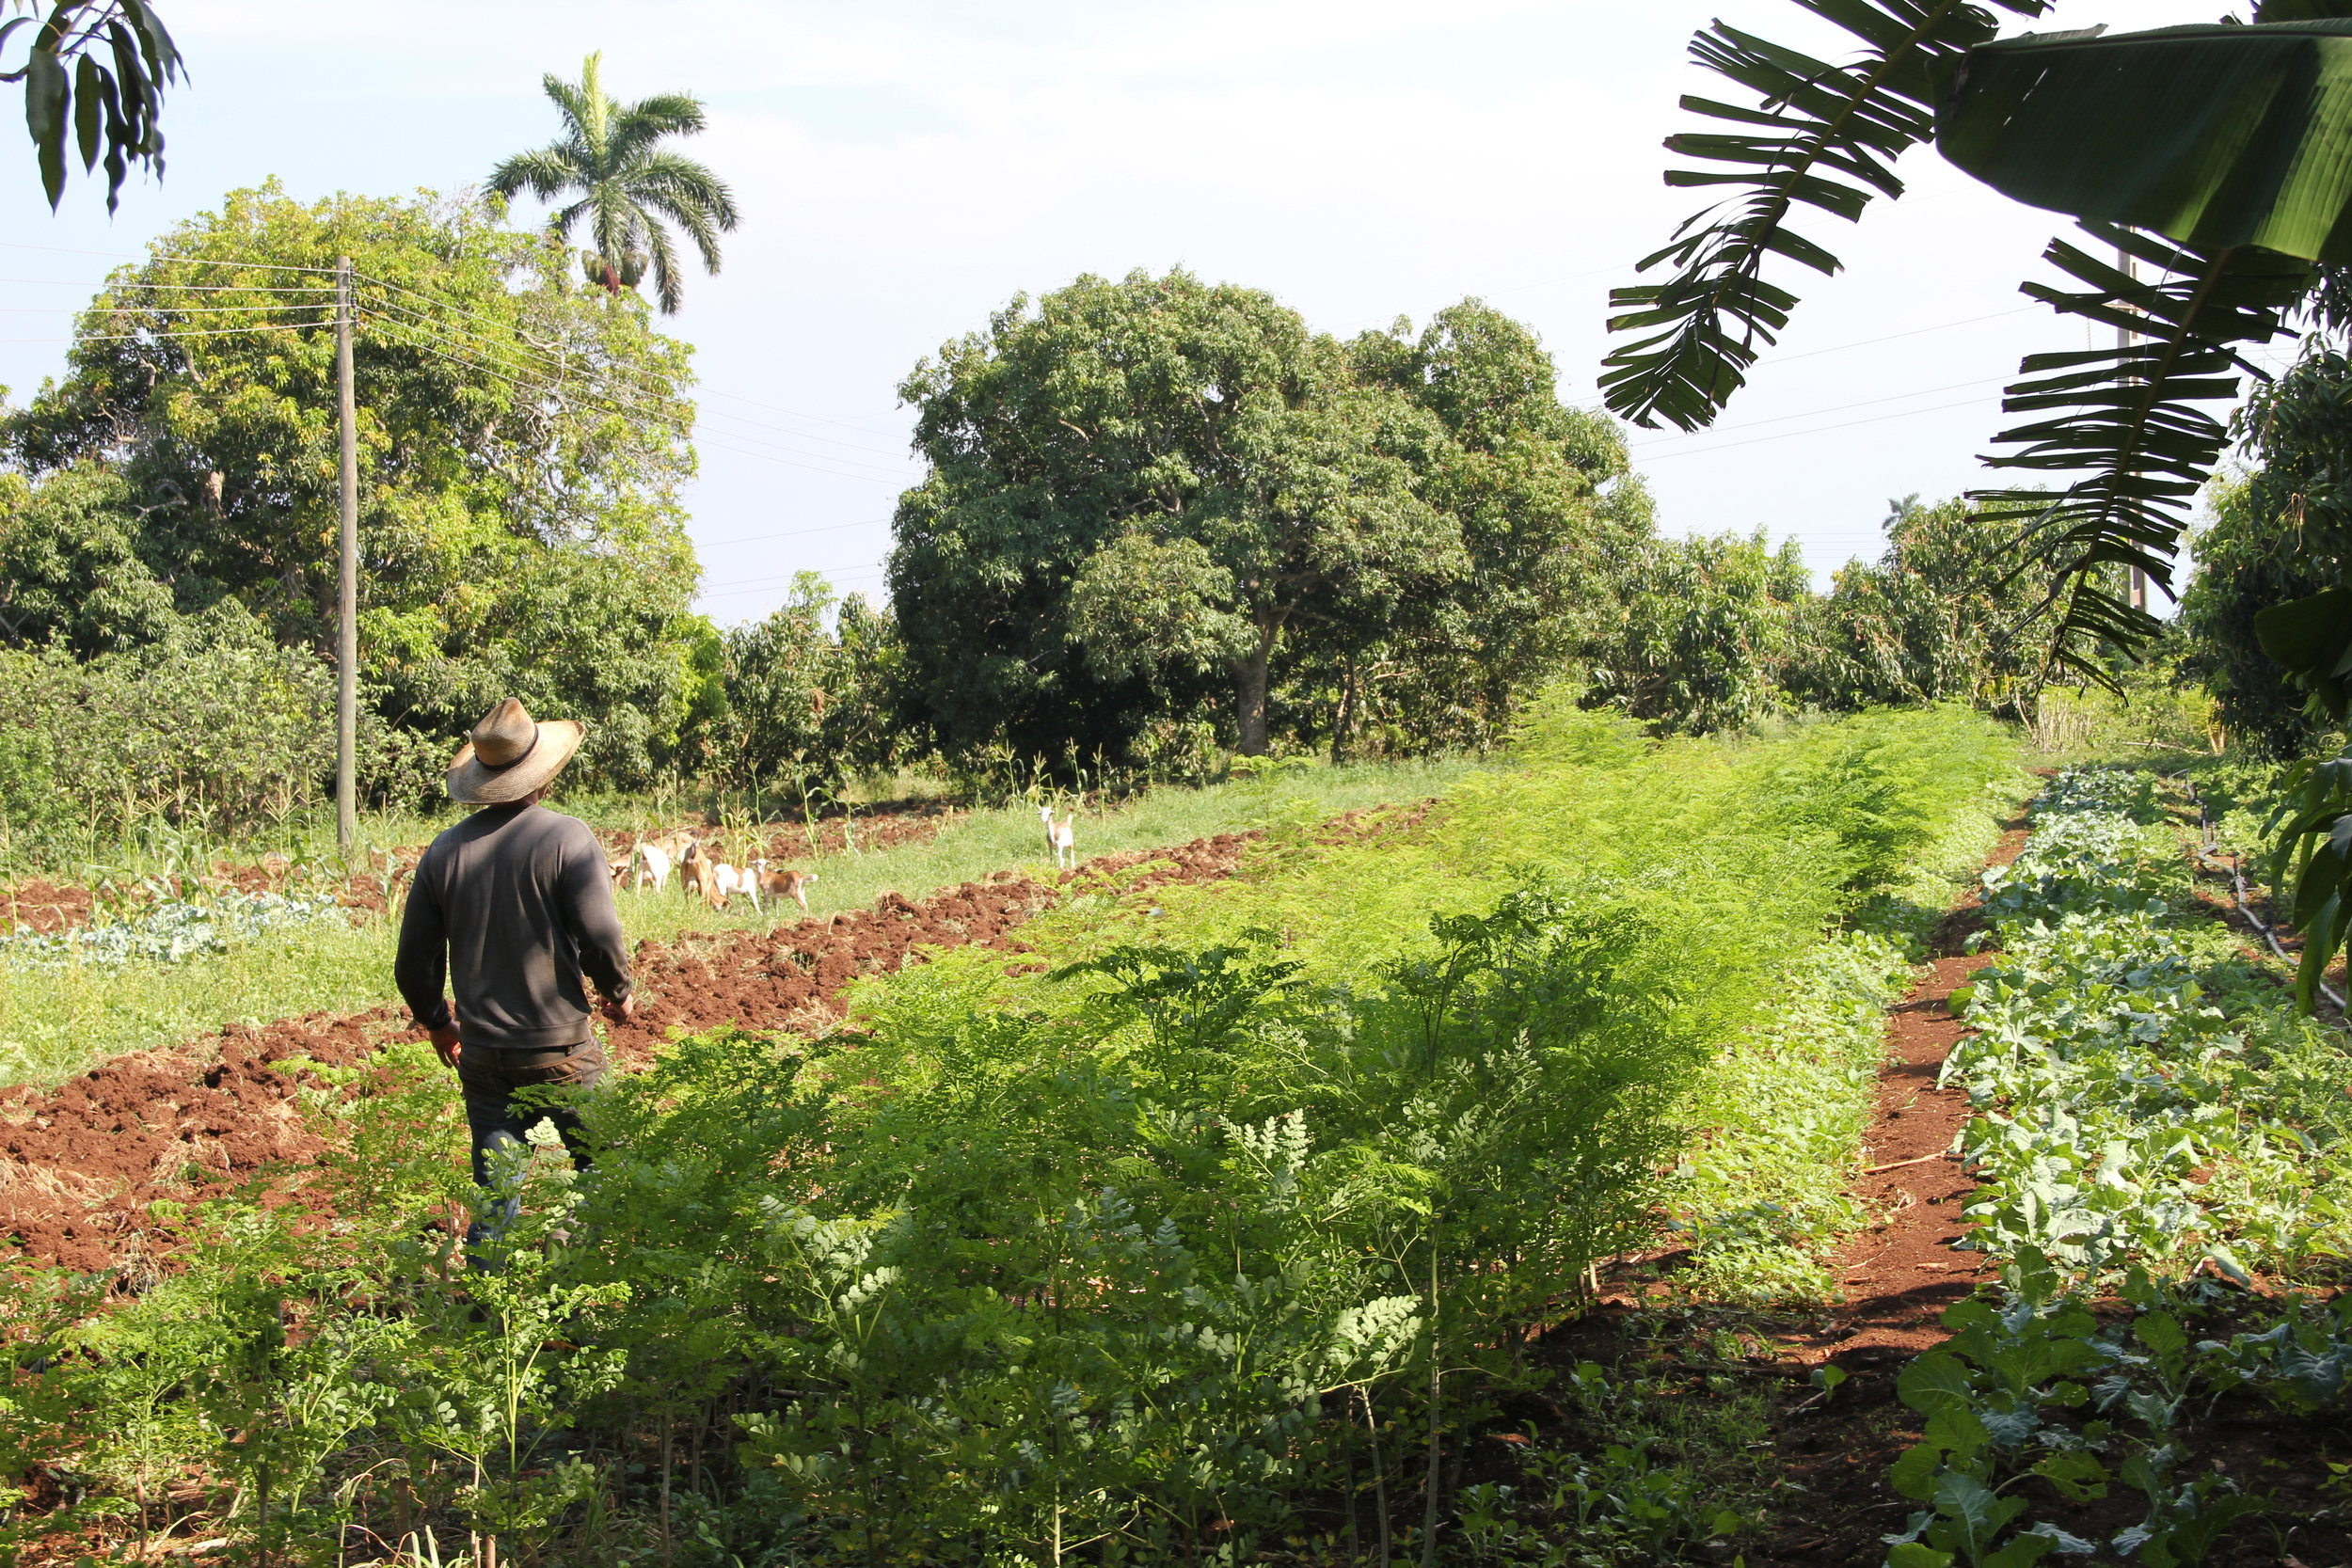 IN THE FIELD: sustainable agriculture in cuba - Experience Cuba from the ground up!Get your hands dirty alongside farmers and scientists while exploring the island's rich history, food, and culture.From farmers' markets to permaculture projects, you'll get to know Cuba from root to leaf.